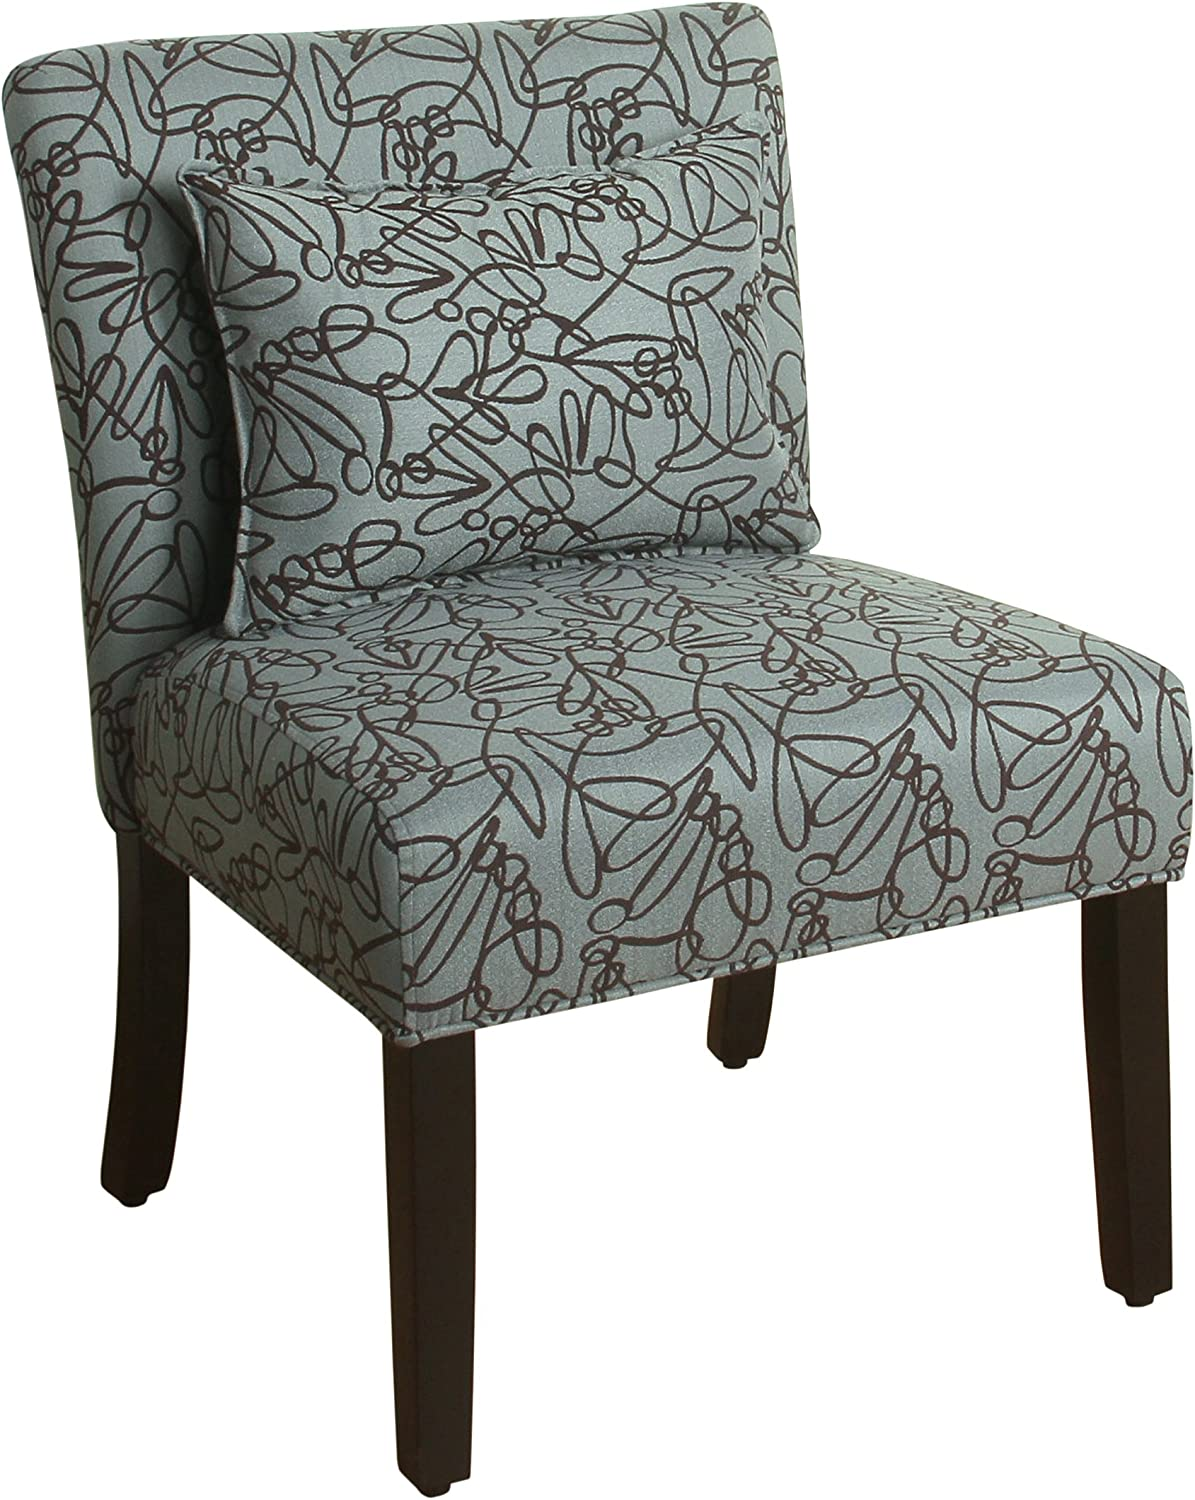 HomePop Parker Accent Chair with Pillow, Teal Swirl